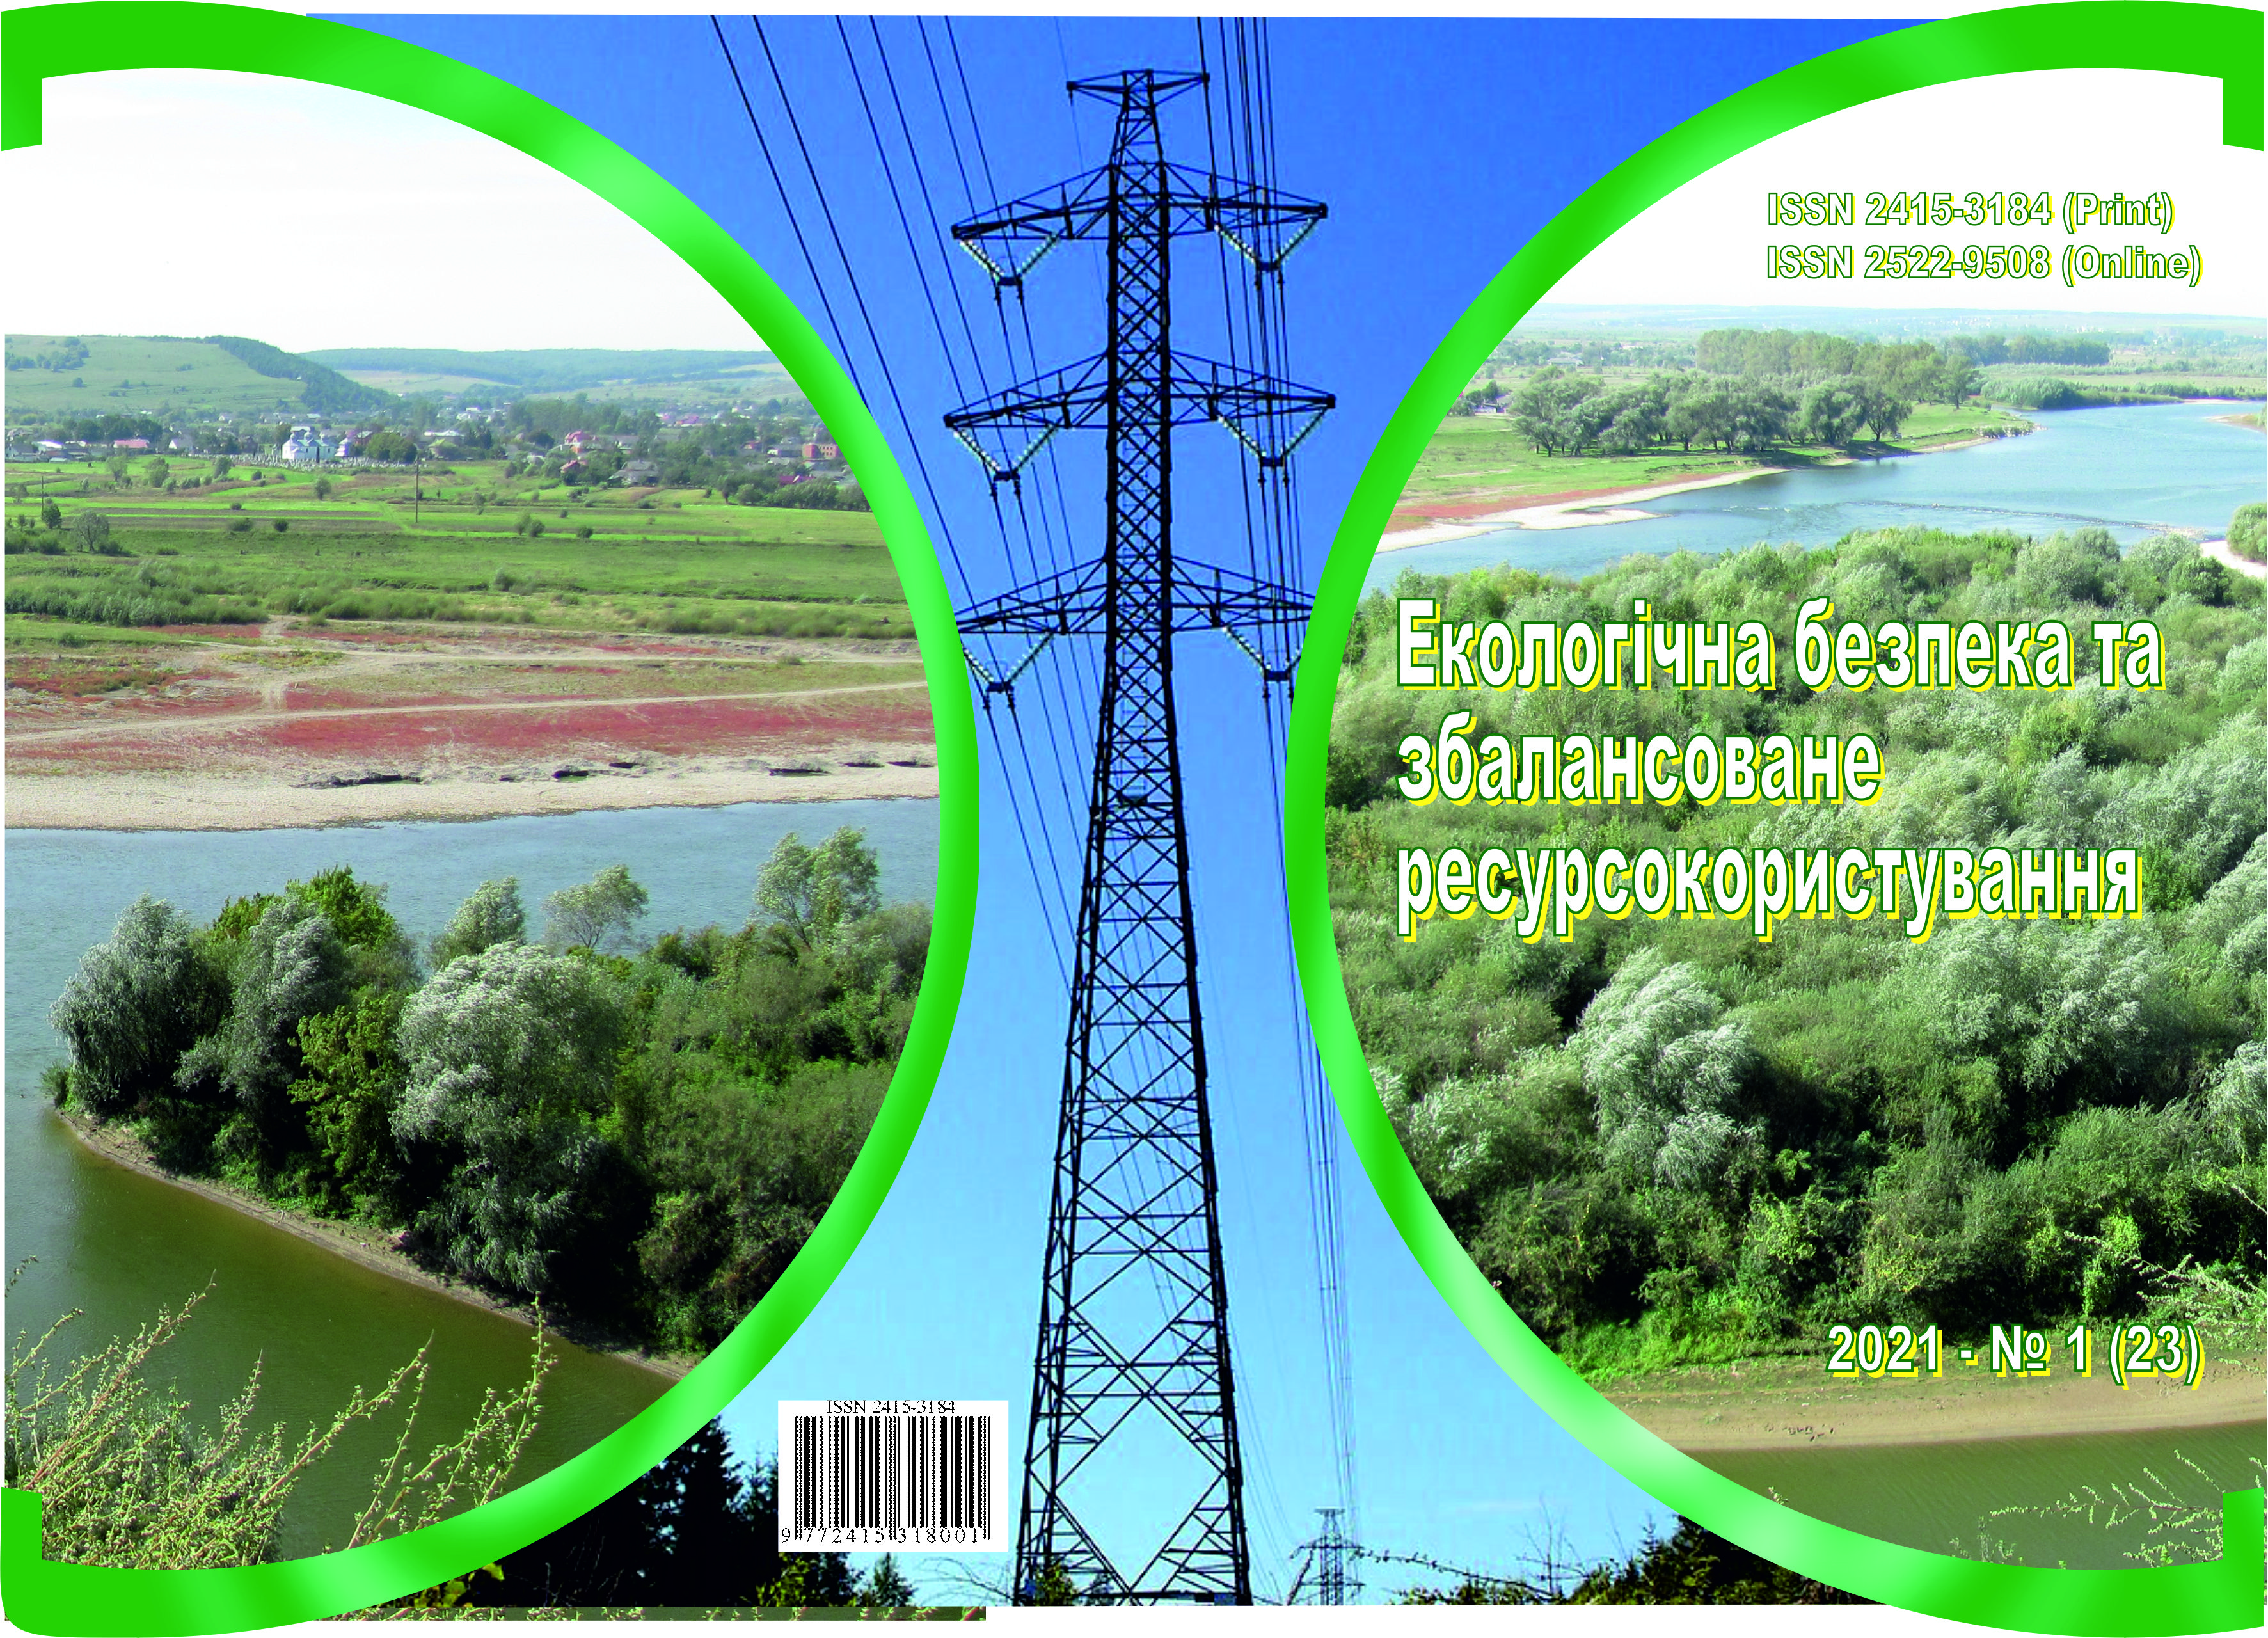 View No. 1(23) (2021): Ecological Safety and Balanced Use of Resources